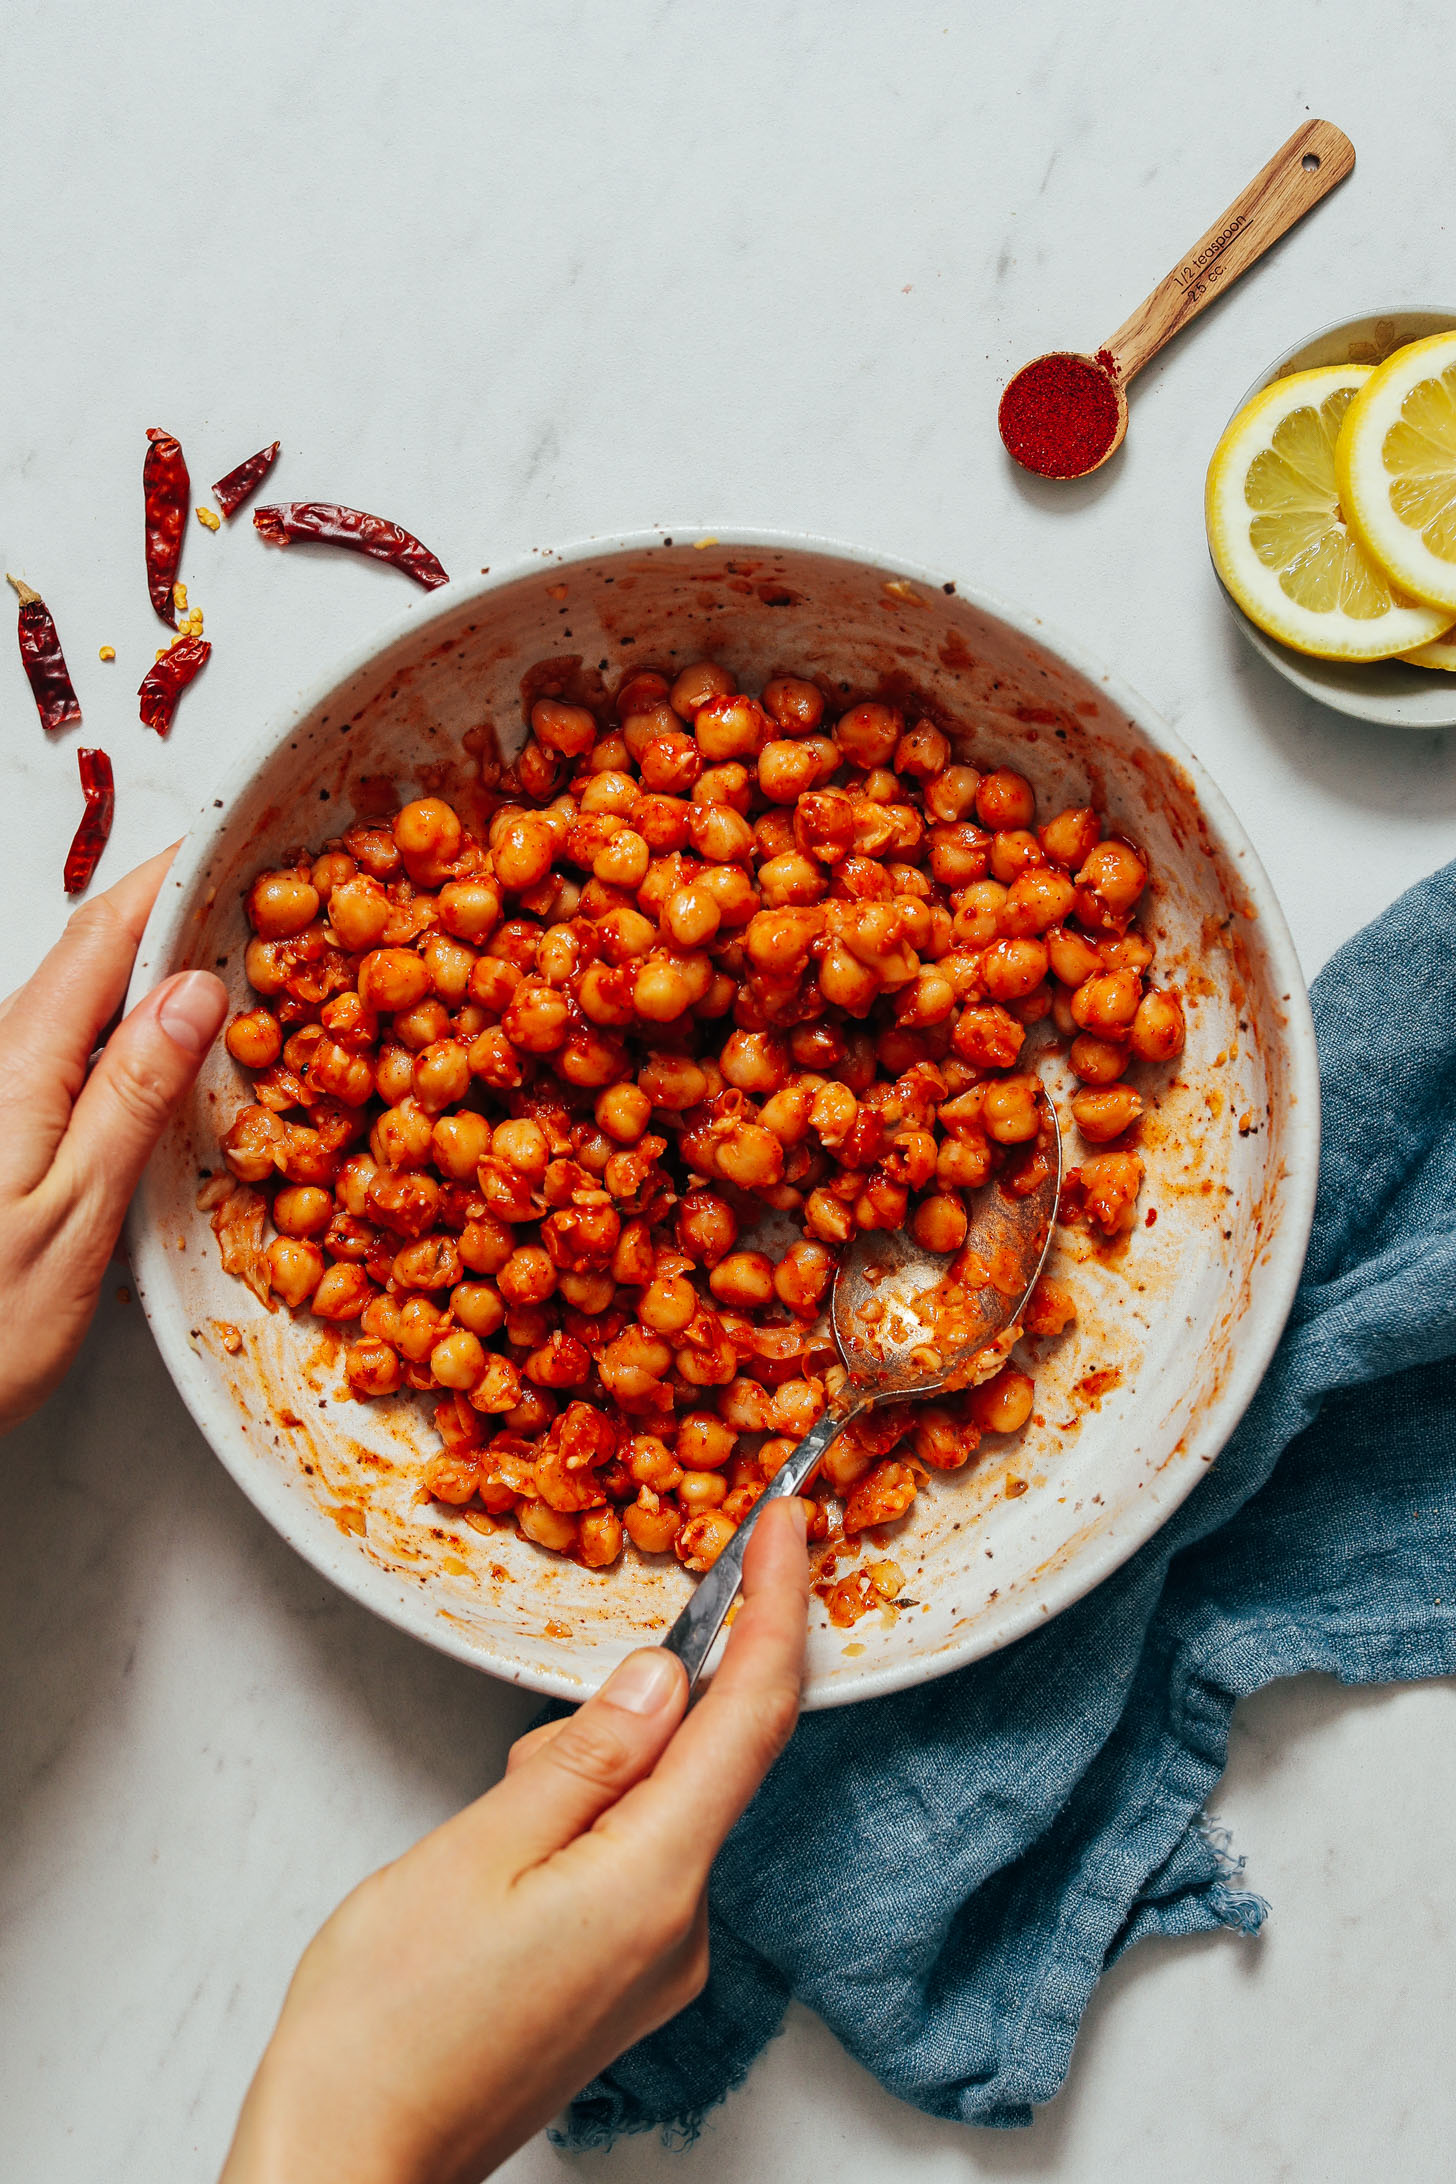 Holding a spoon and bowl of harissa chickpeas